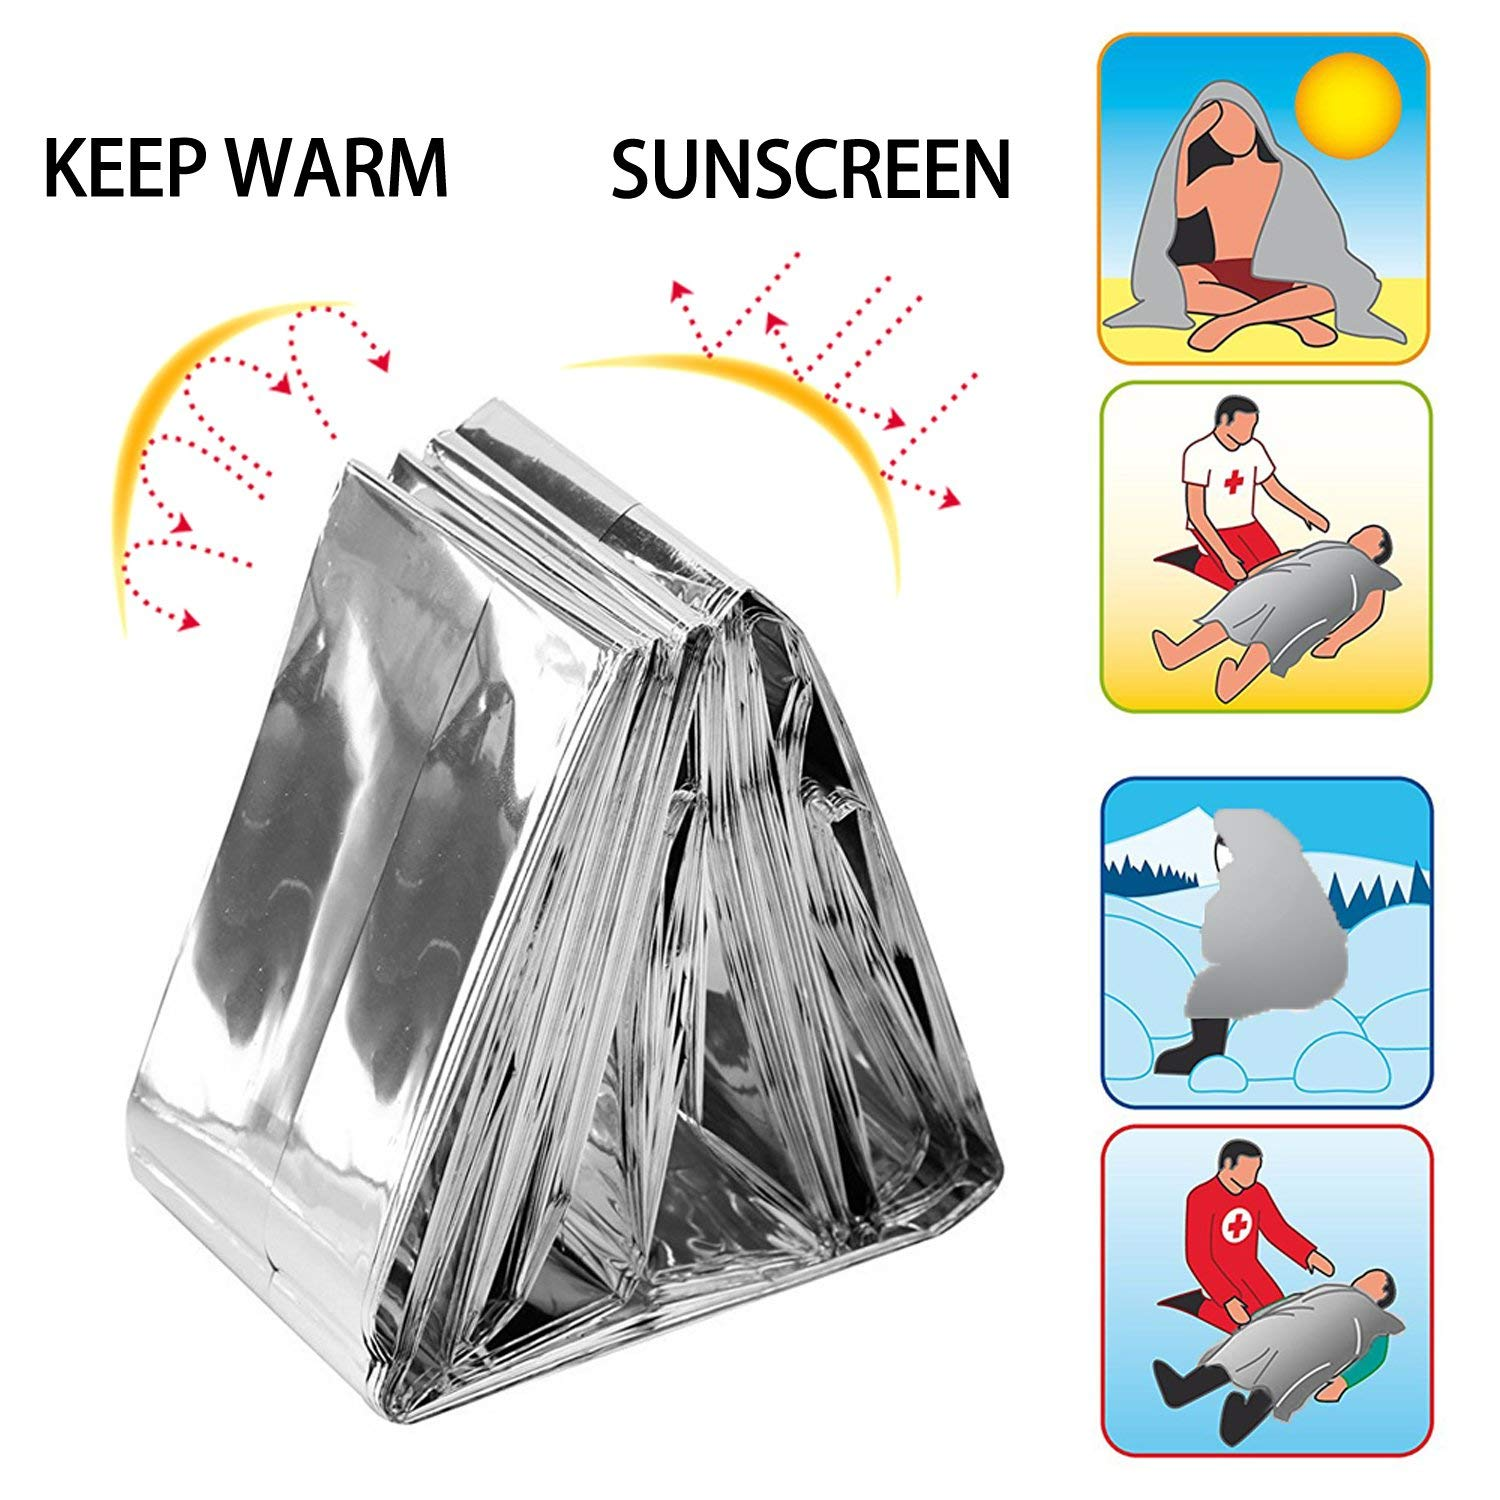 Waterproof Foil Blanket for Survival Homeless First Aid BSGP